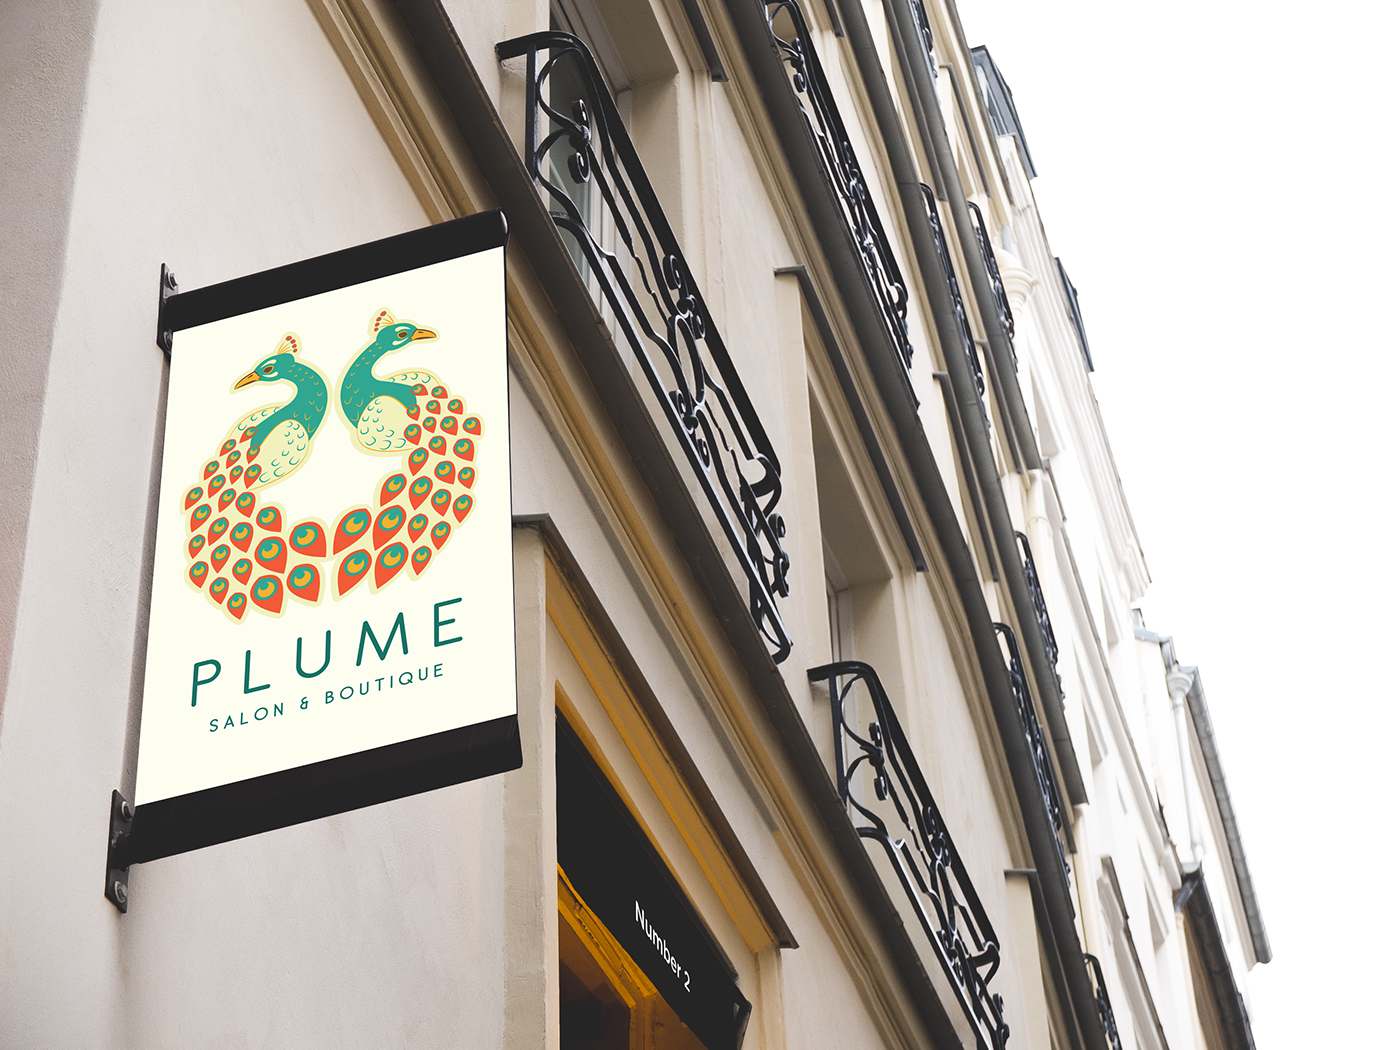 Plume Salon & Boutique